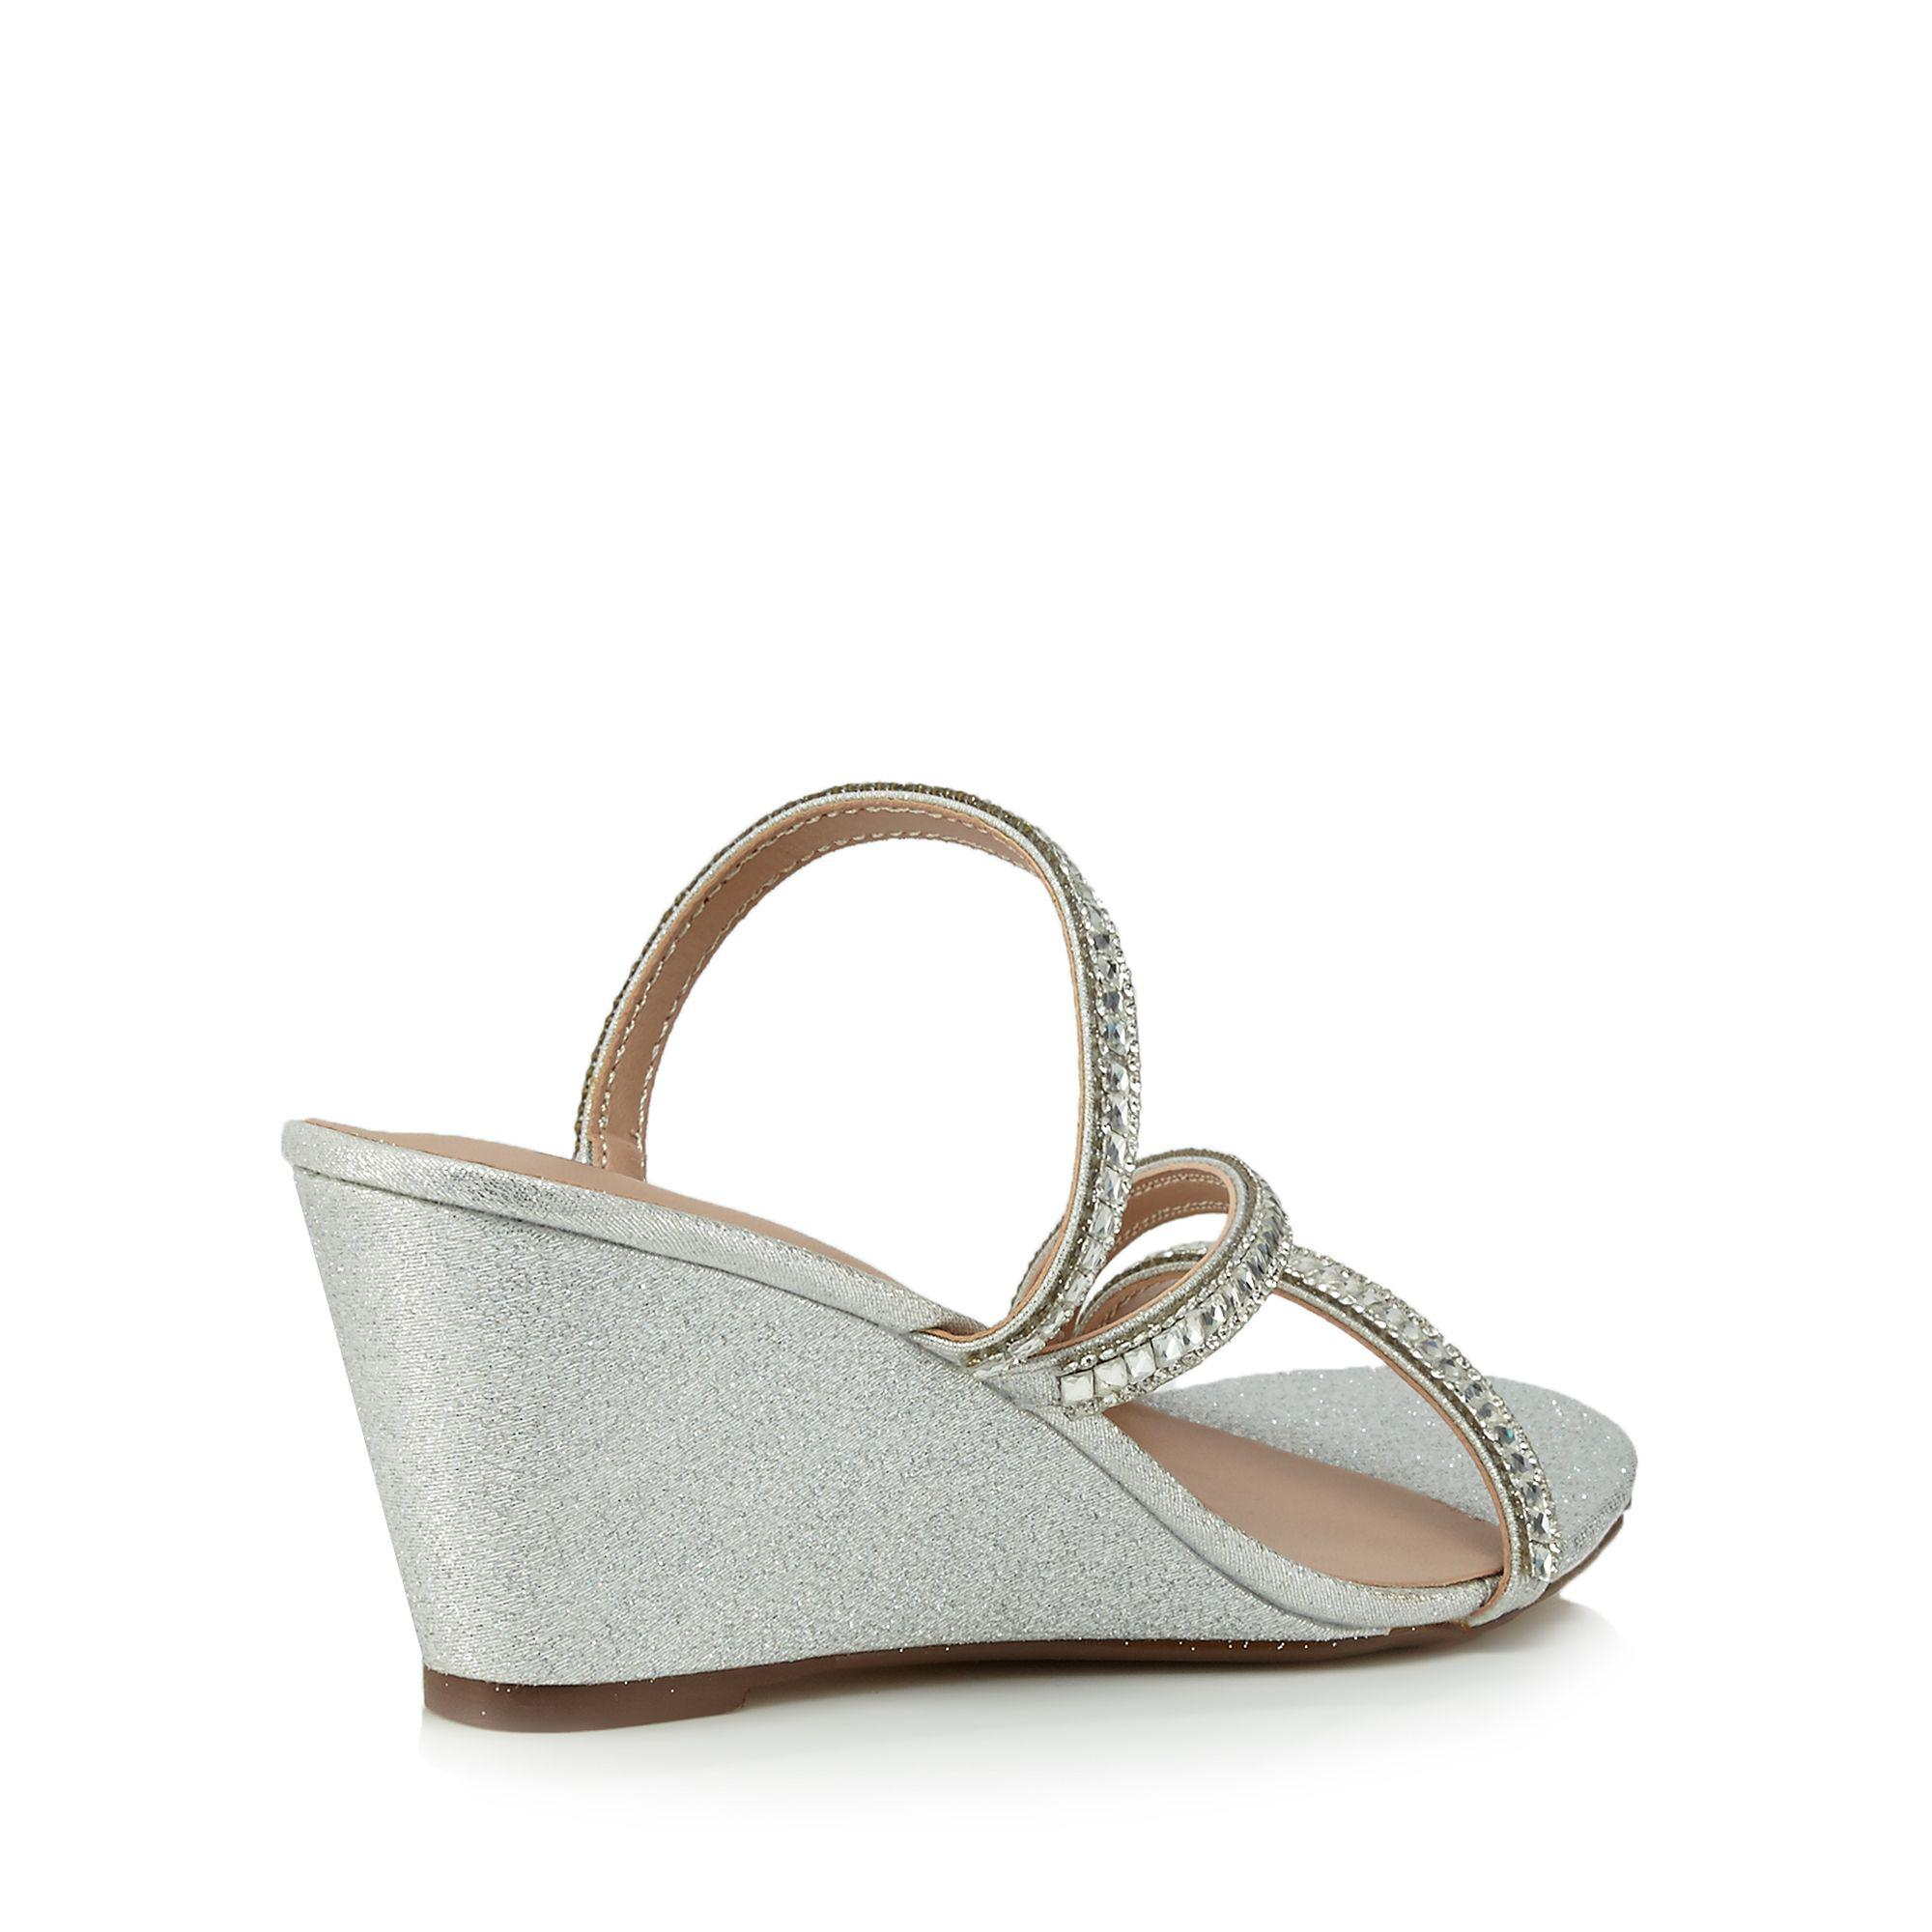 ddec88c6f58 Call It Spring Silver Glittery  froetha  Mid Wedge Heel Mules in ...